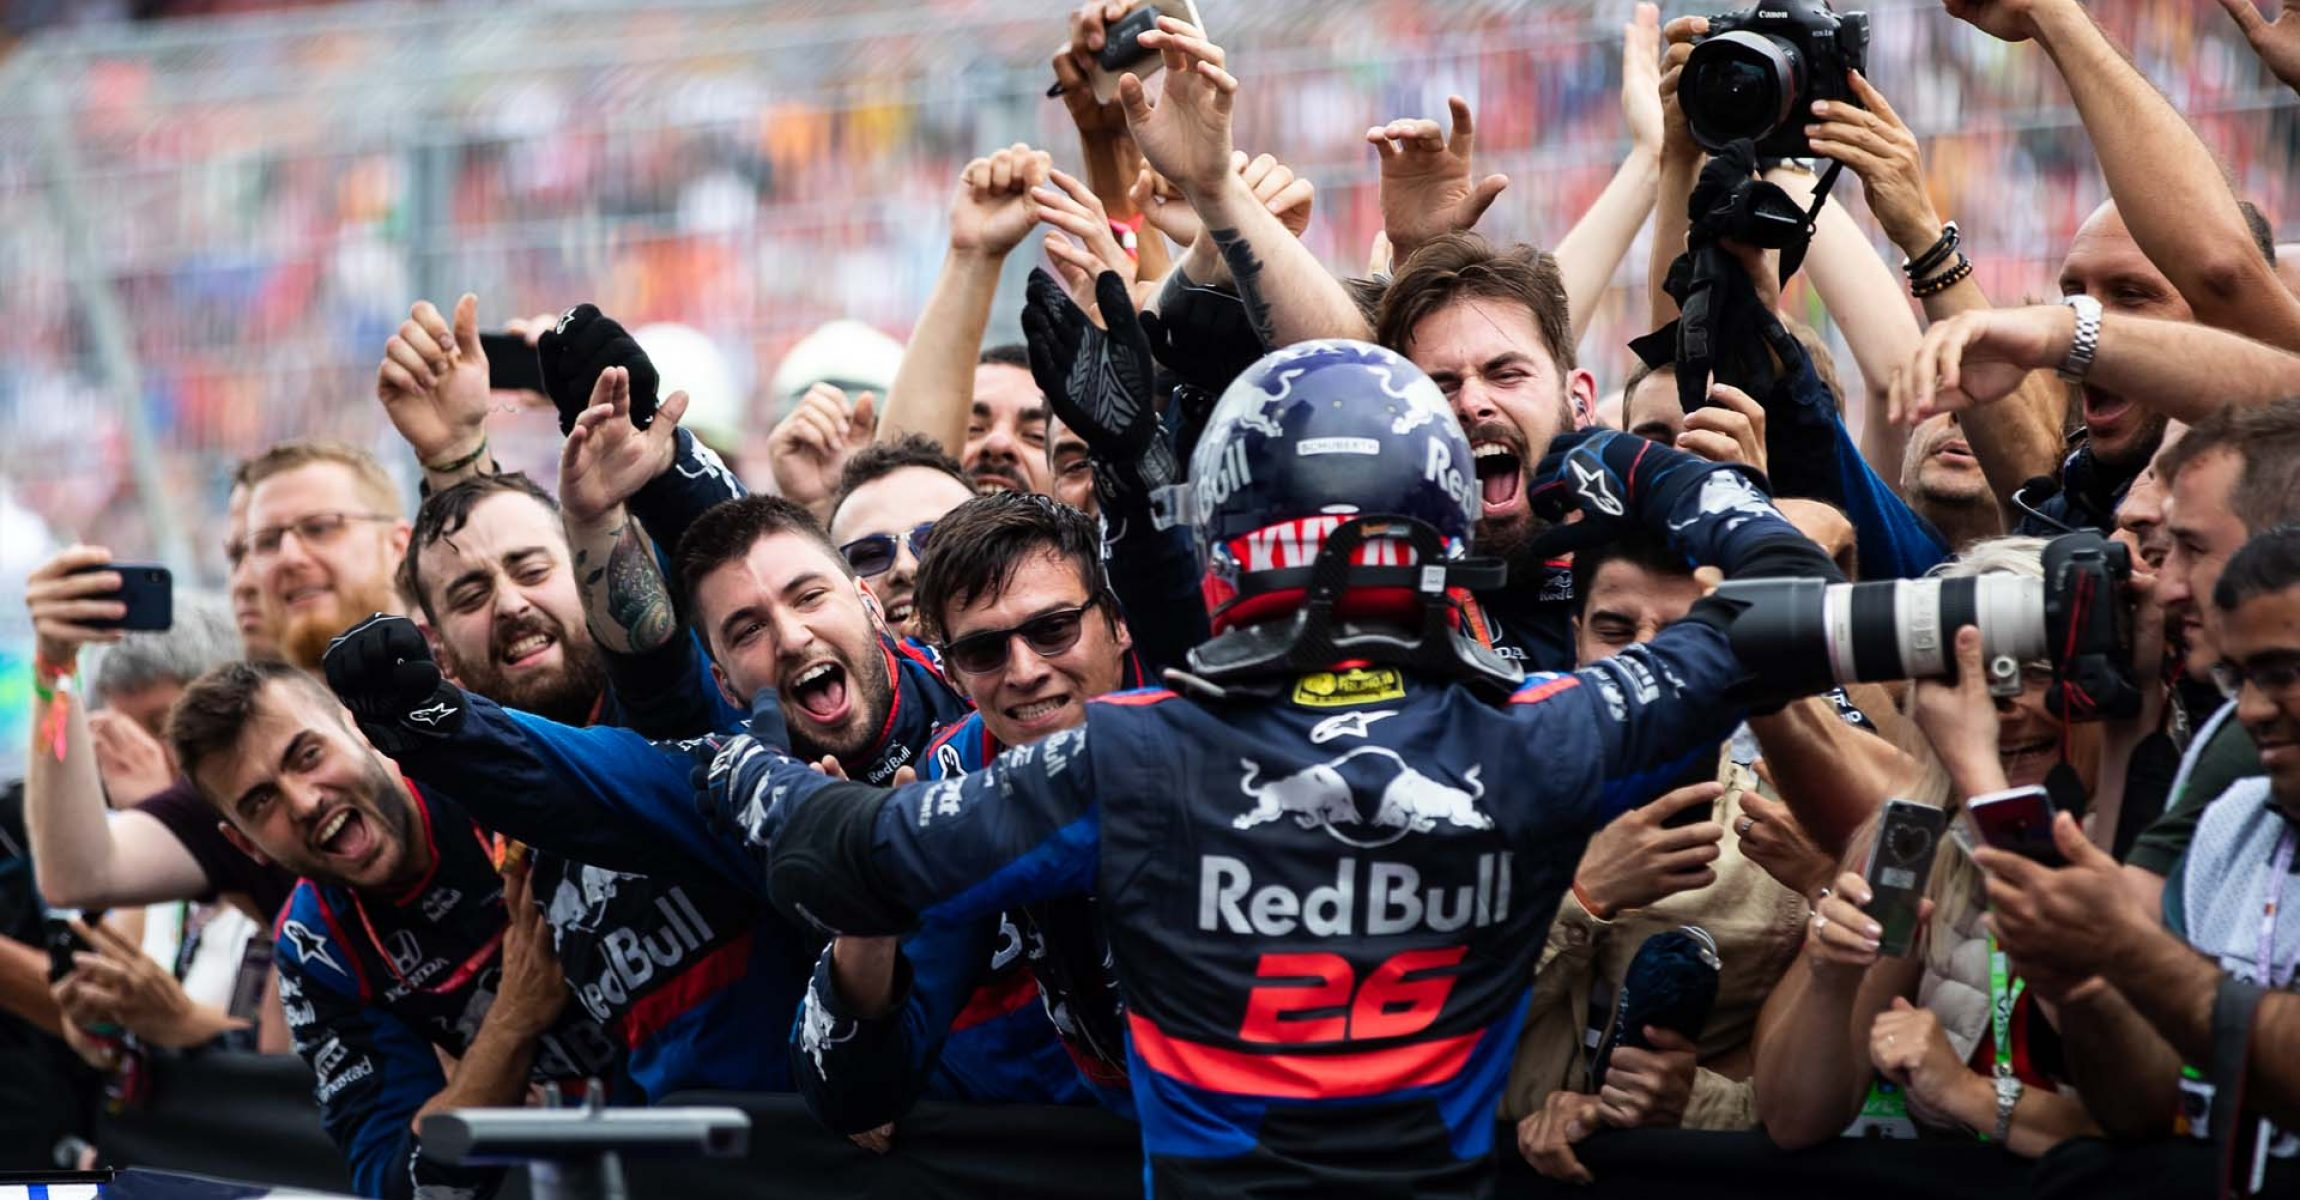 HOCKENHEIM, GERMANY - JULY 28: Third placed Daniil Kvyat of Russia and Scuderia Toro Rosso celebrates in parc ferme during the F1 Grand Prix of Germany at Hockenheimring on July 28, 2019 in Hockenheim, Germany. (Photo by Lars Baron/Getty Images) // Getty Images / Red Bull Content Pool  // AP-213AD1USS2511 // Usage for editorial use only // Please go to www.redbullcontentpool.com for further information. //